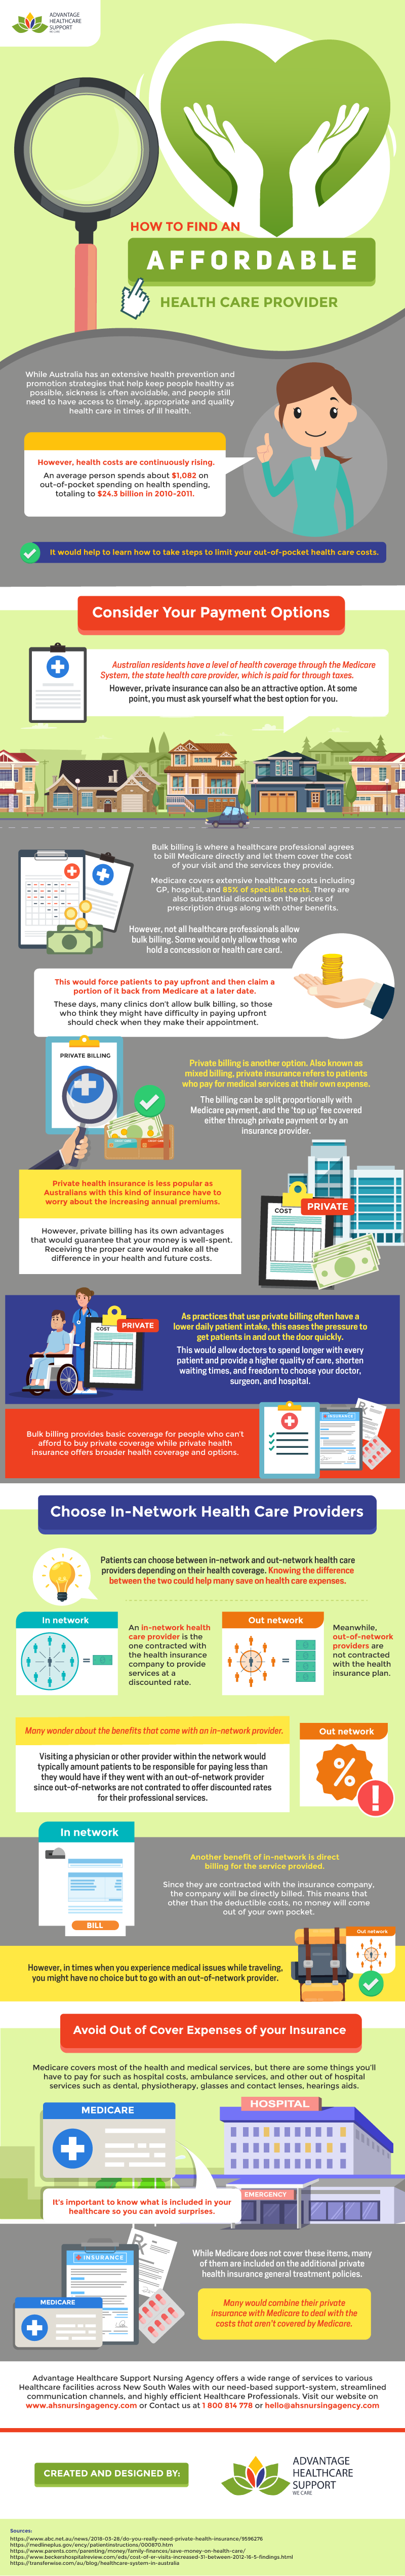 Medicare in Australia: Which Billing System Will Work Best for You? - Infographic